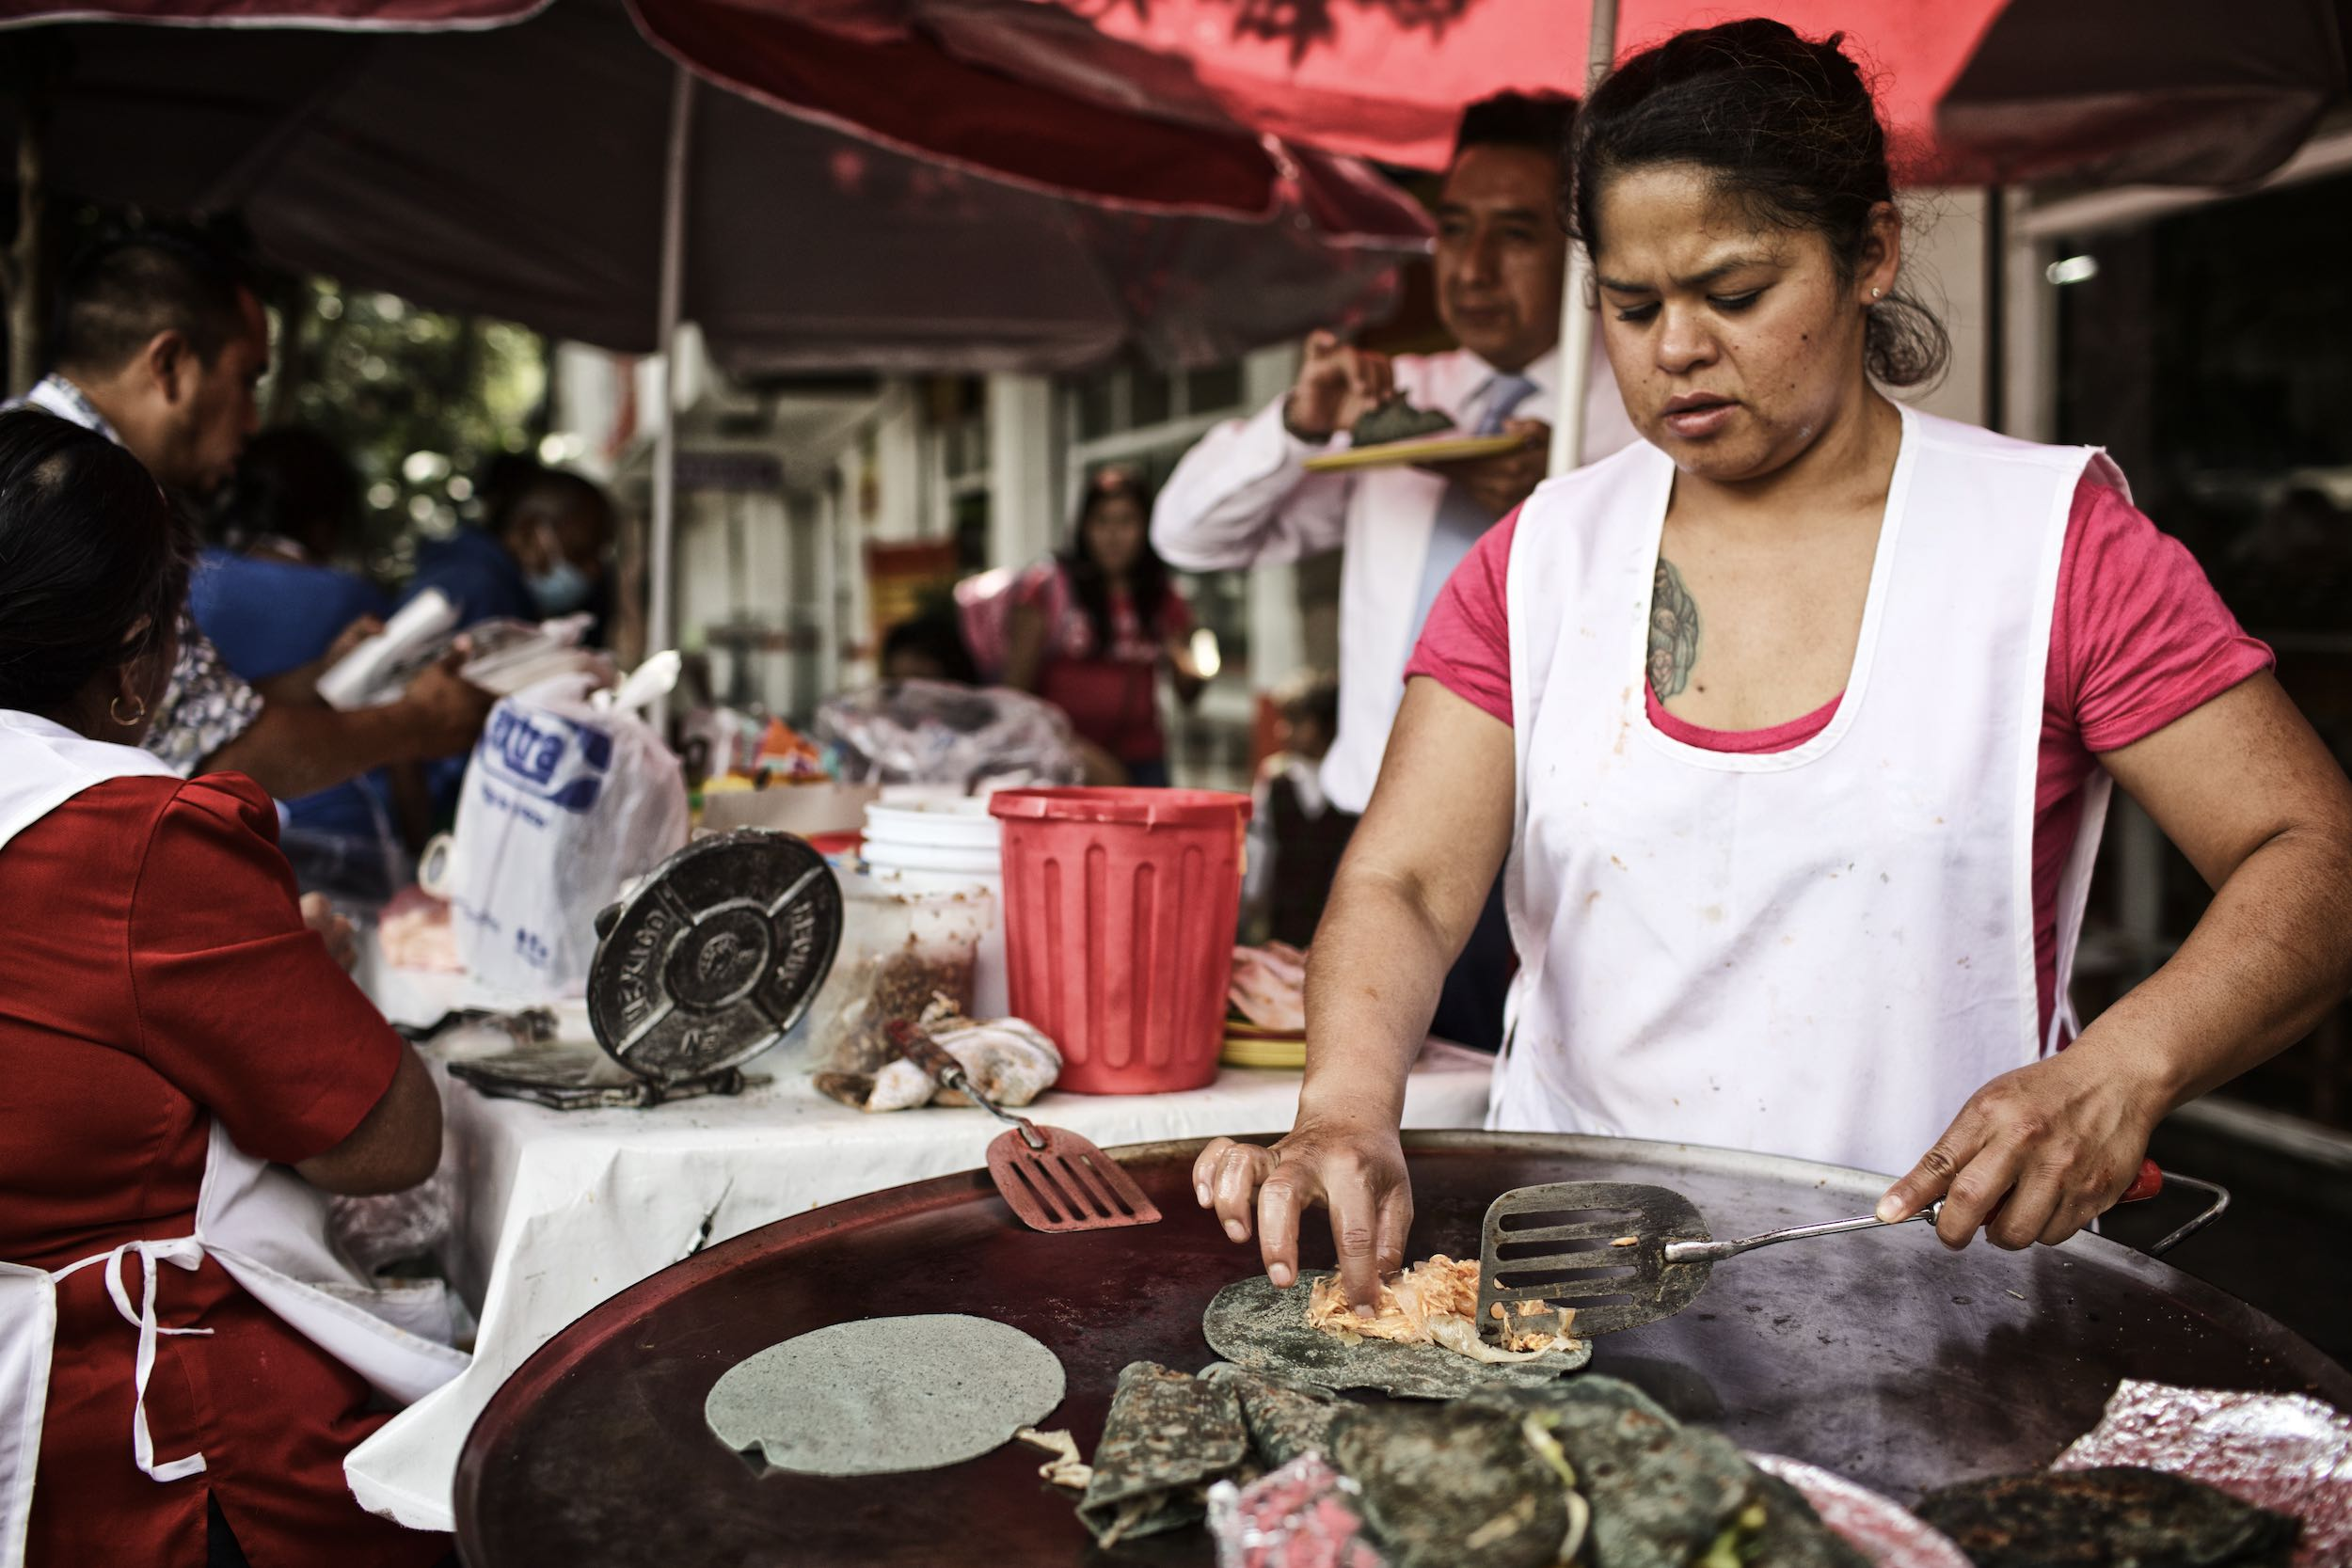 Jody Horton Photography - Chef preparing tacos on a plancha in the streets of Mexico City.